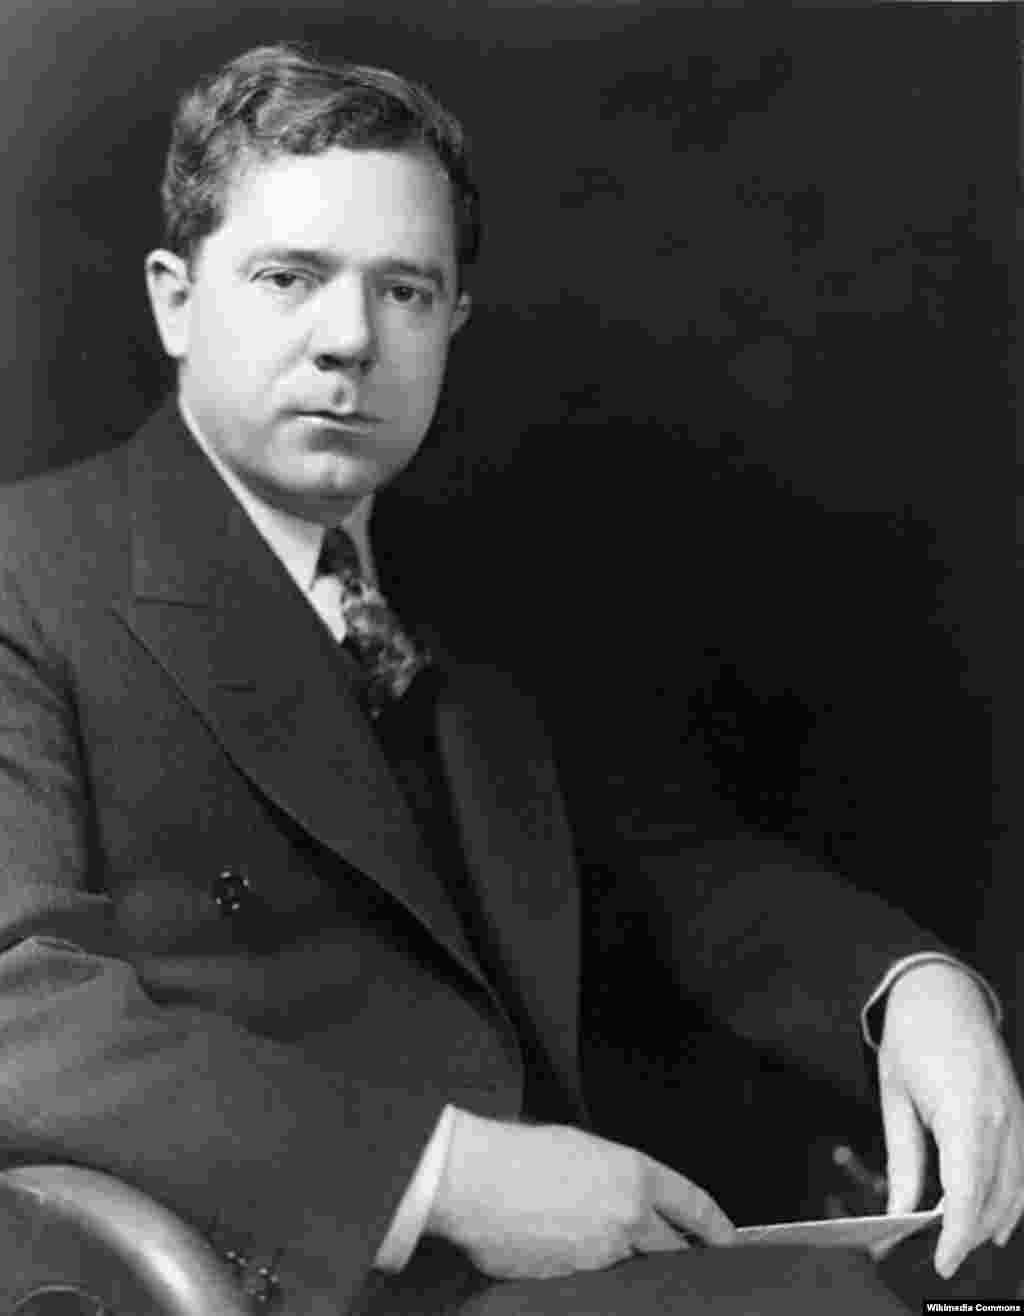 "Another senator with presidential ambitions, Huey Long, was assassinated on September 8, 1935. - Long, who was the inspiration for Robert Penn Warren's classic book ""All The King's Men,"" was shot in the hallway of the Louisiana capital building by the nephew of a bitter political opponent. He died two days later. James Hinds, who represented Arkansas shortly after the American Civil War, was shot and killed on October 22, 1868, by a member of the Ku Klux Klan by while traveling on horseback to a public event."